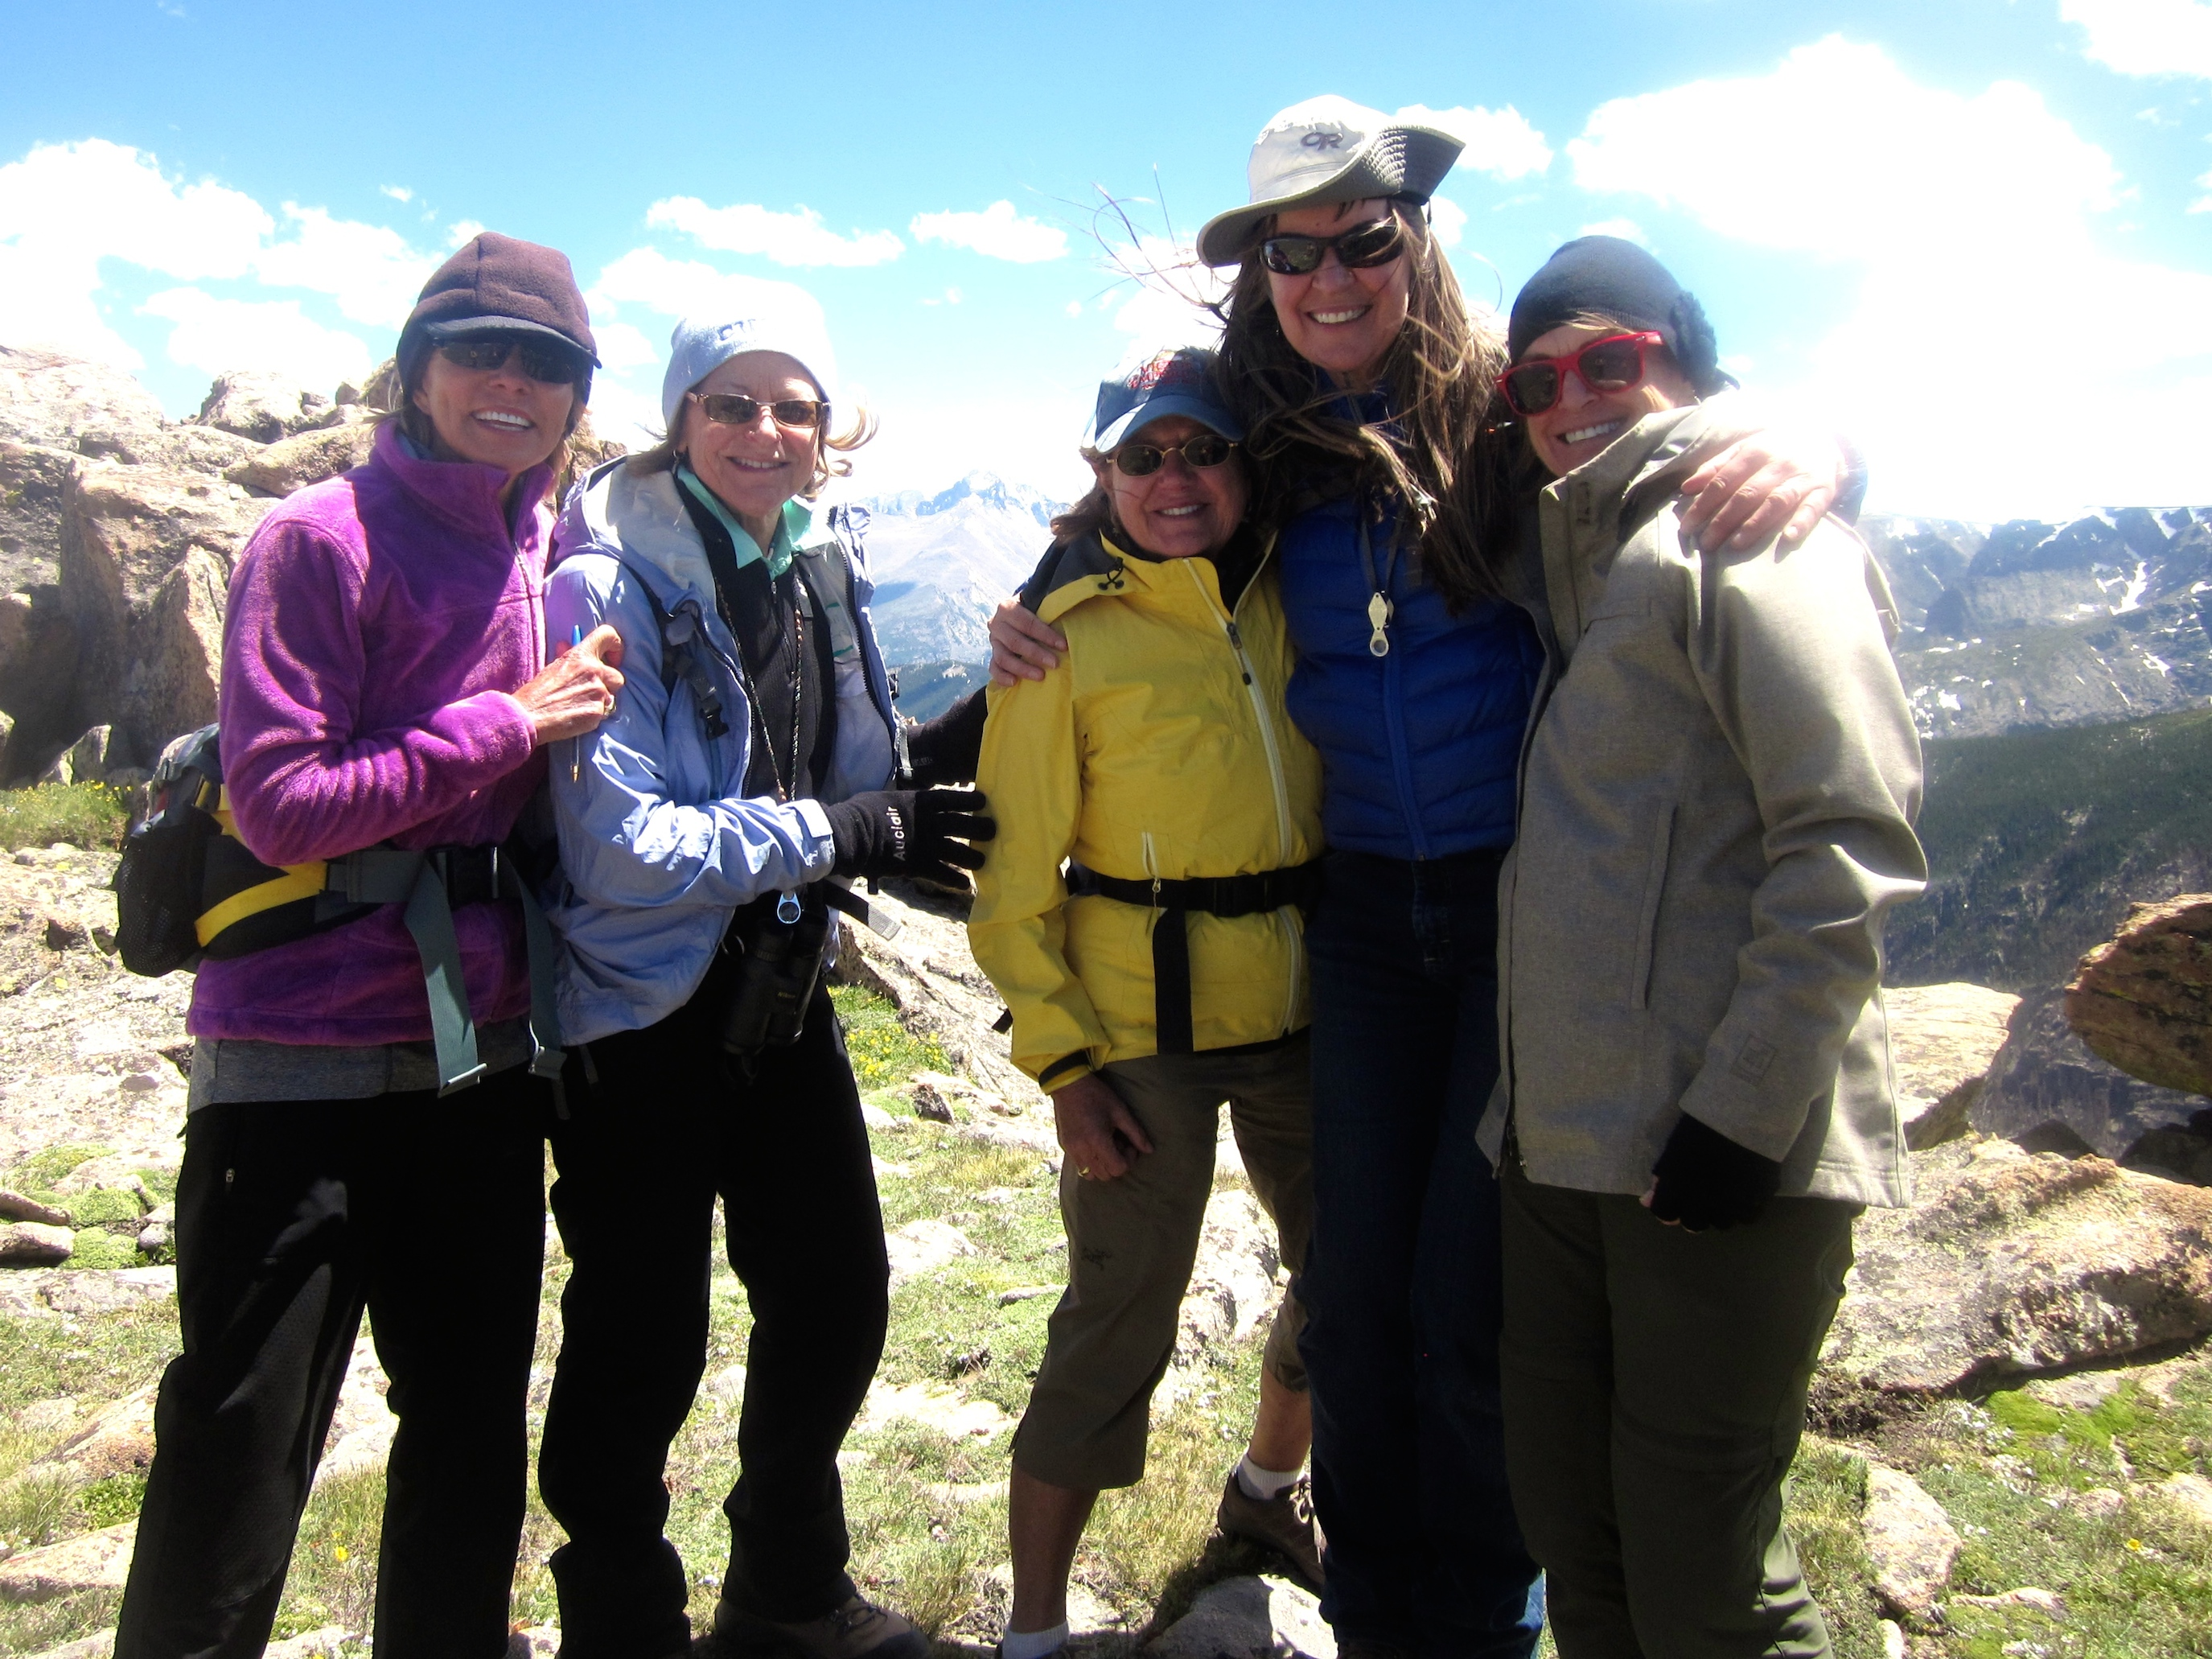 This is the highest we climbed. Think Base Camp at Mt. Everest. Long's Peak, 14,259' (4,346M) is in the background. We're with our instructor who thinks this is fun!